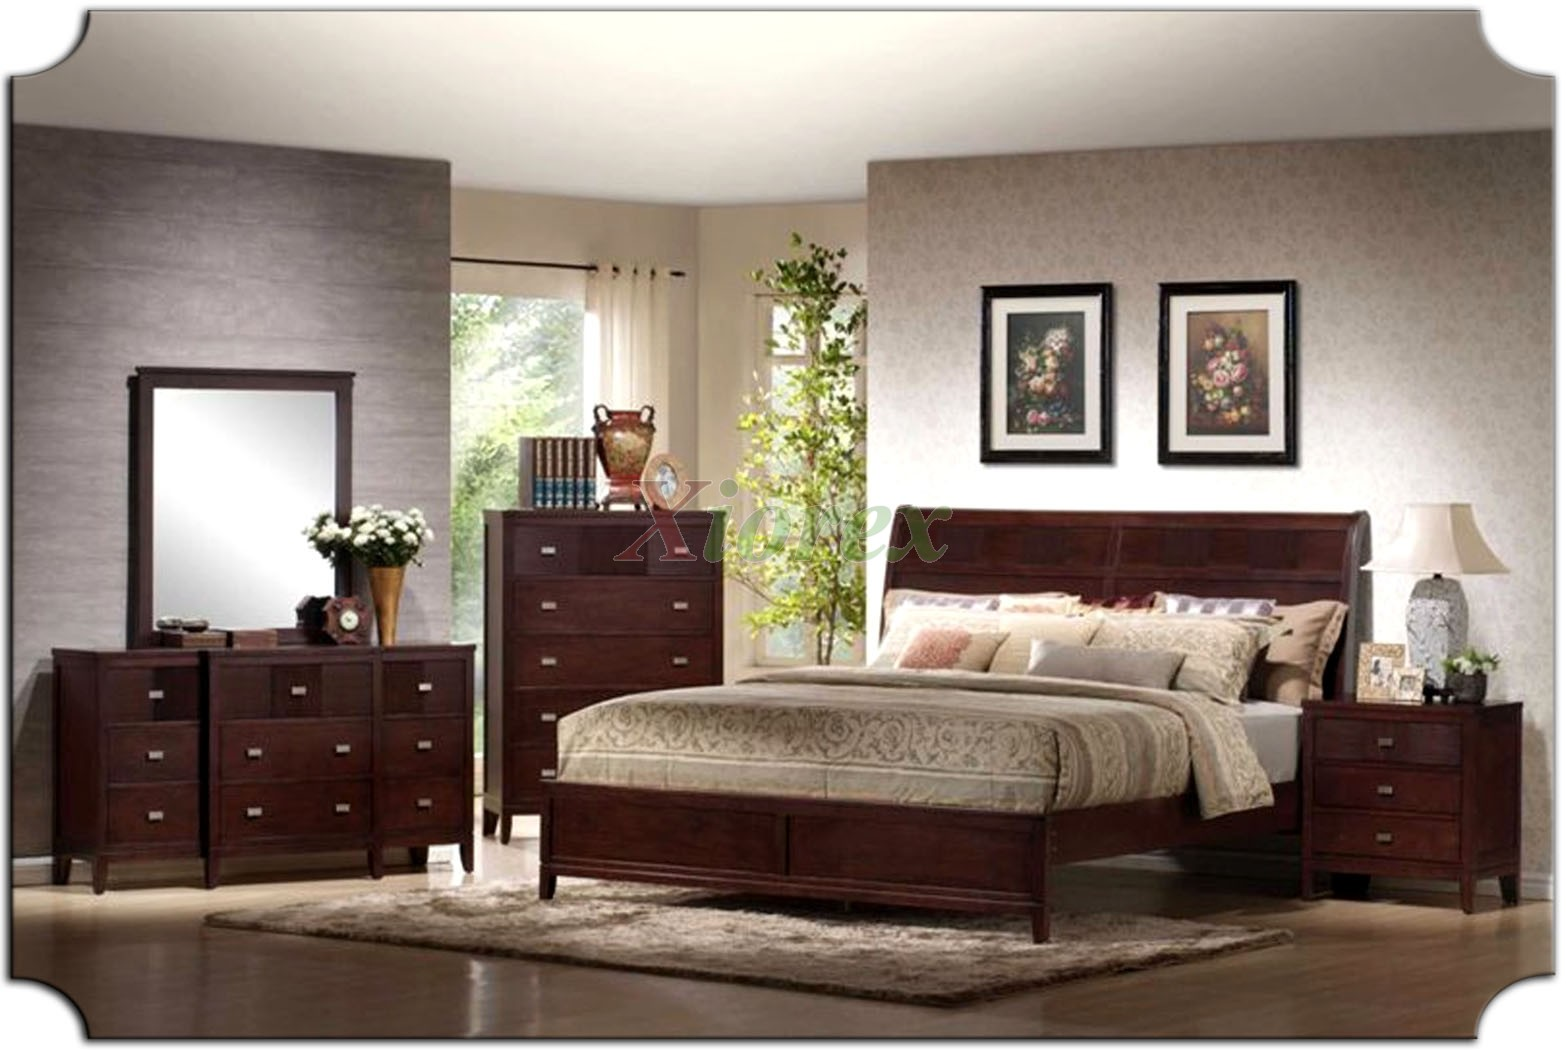 Platform bedroom furniture set with curved headboard beds for Bed and bedroom sets